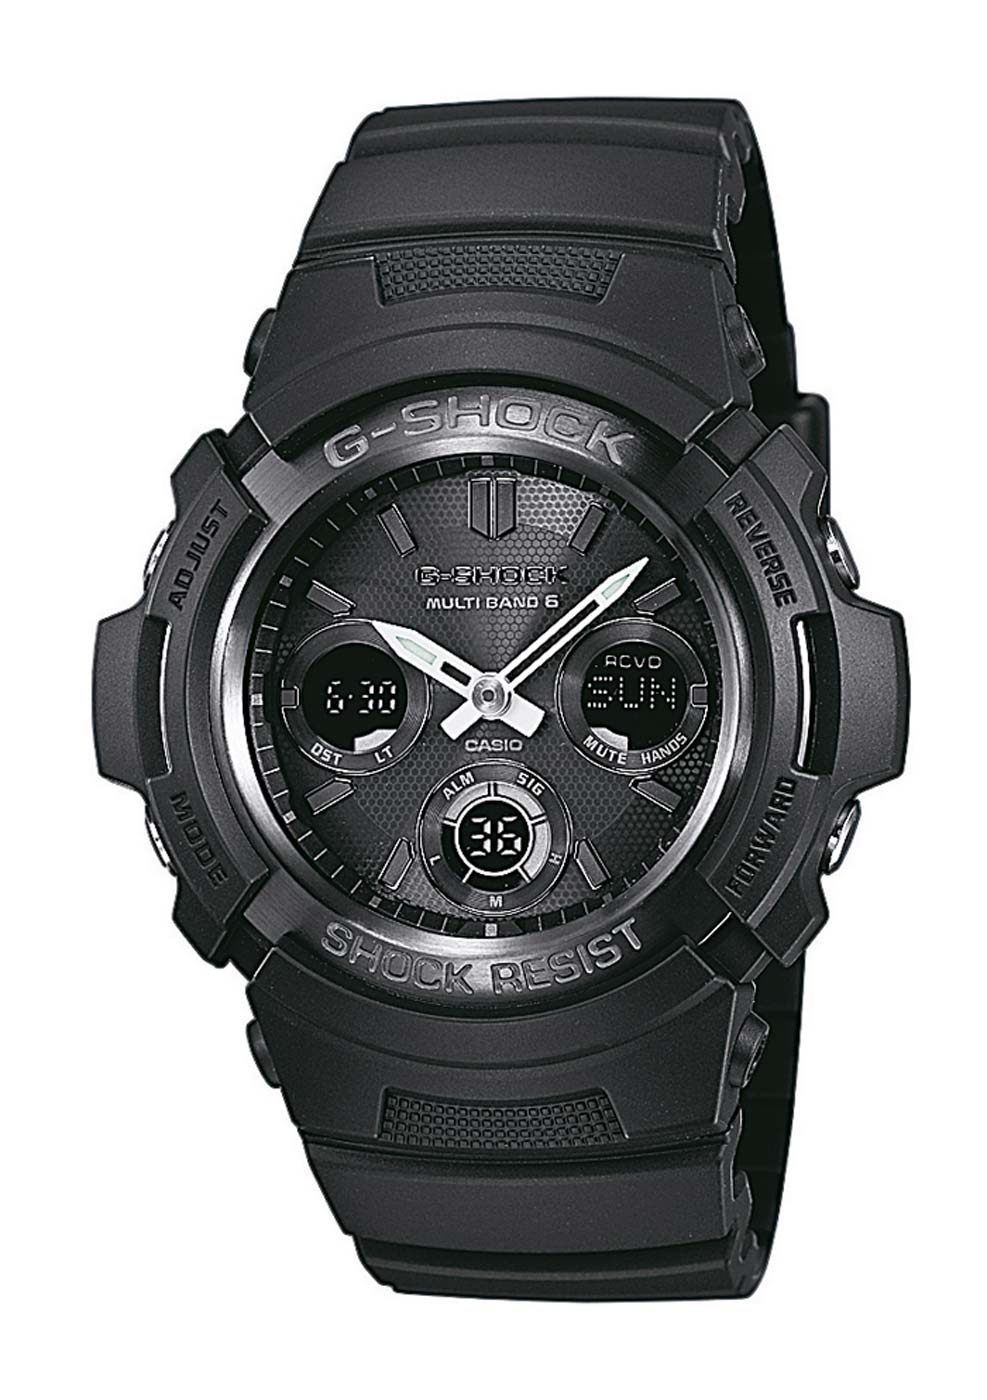 casio awg m100b 1aer montre montre homme chronographes nouveau ebay. Black Bedroom Furniture Sets. Home Design Ideas